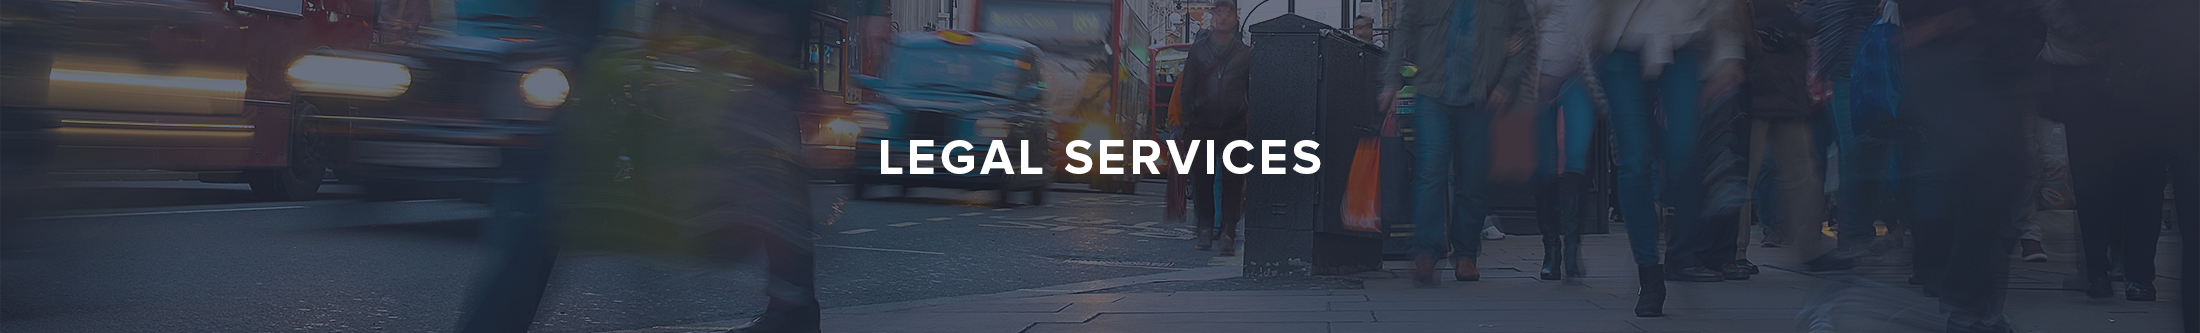 legal_services_banner